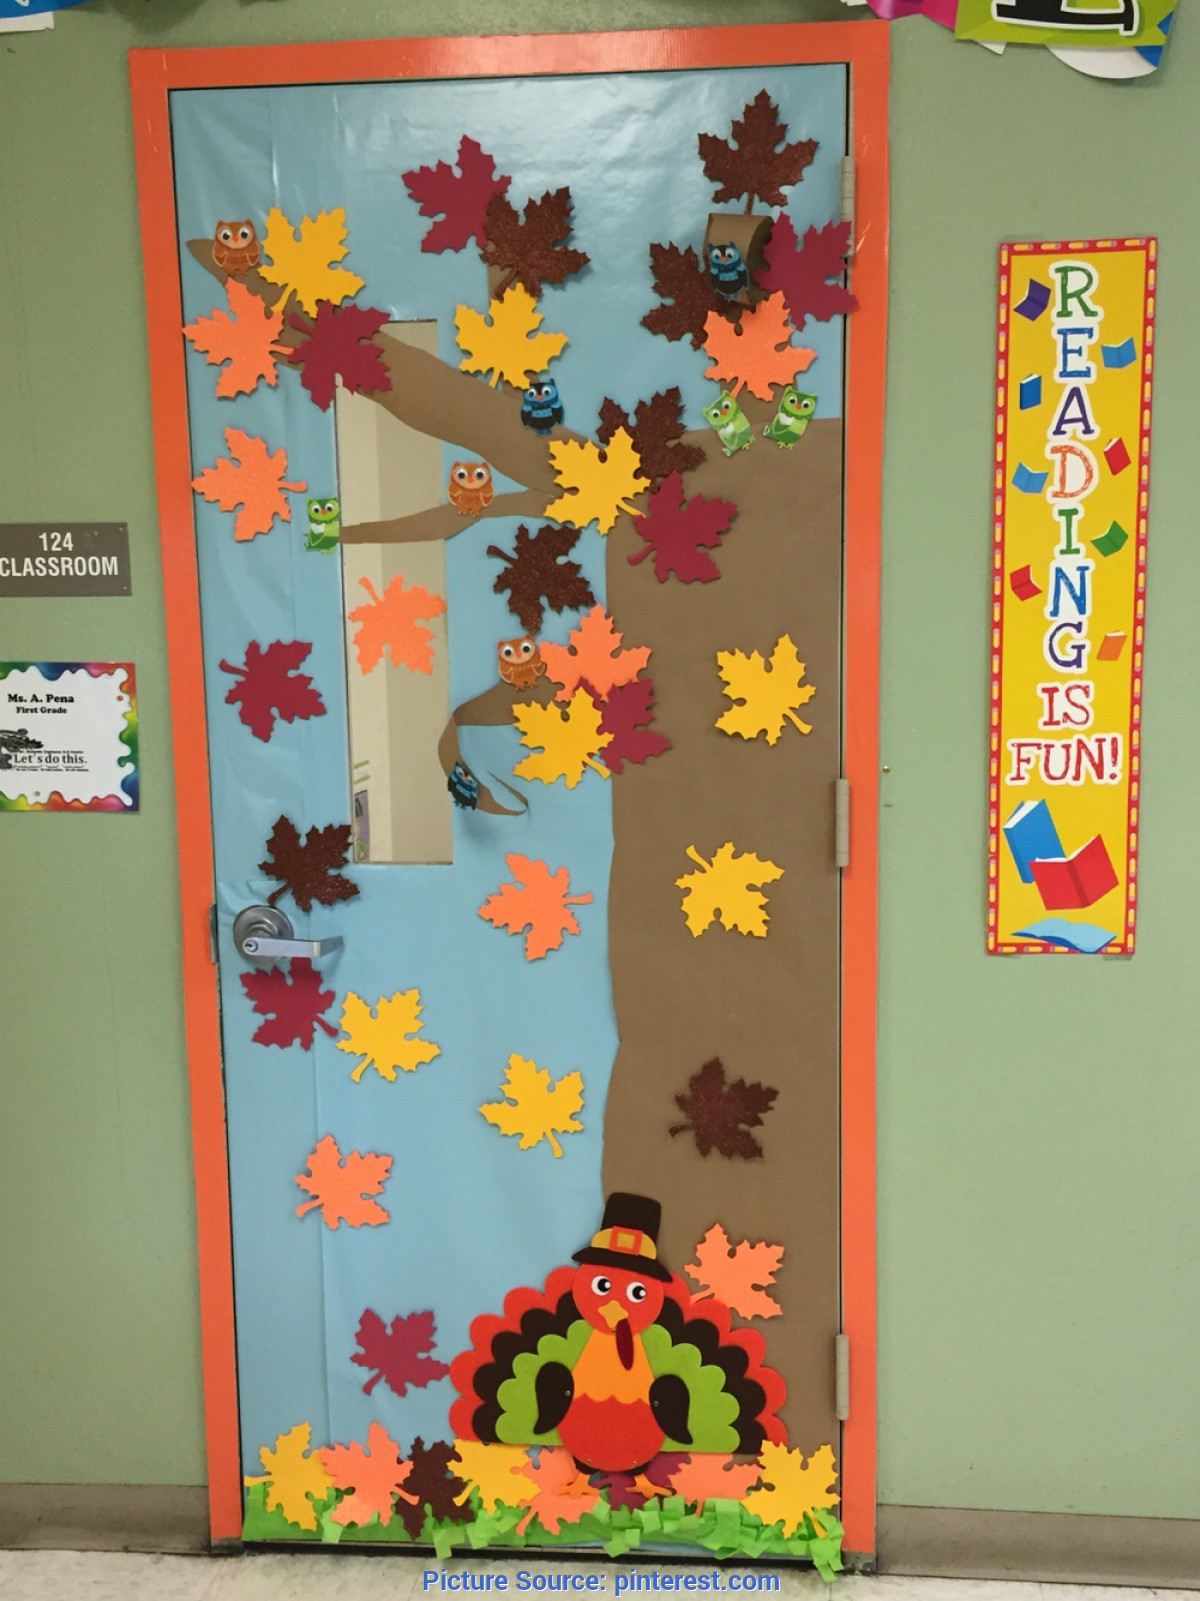 Interesting Fall Classroom Decorations Classroom Door Decoration Fall Decoración de Puerta Otoñ